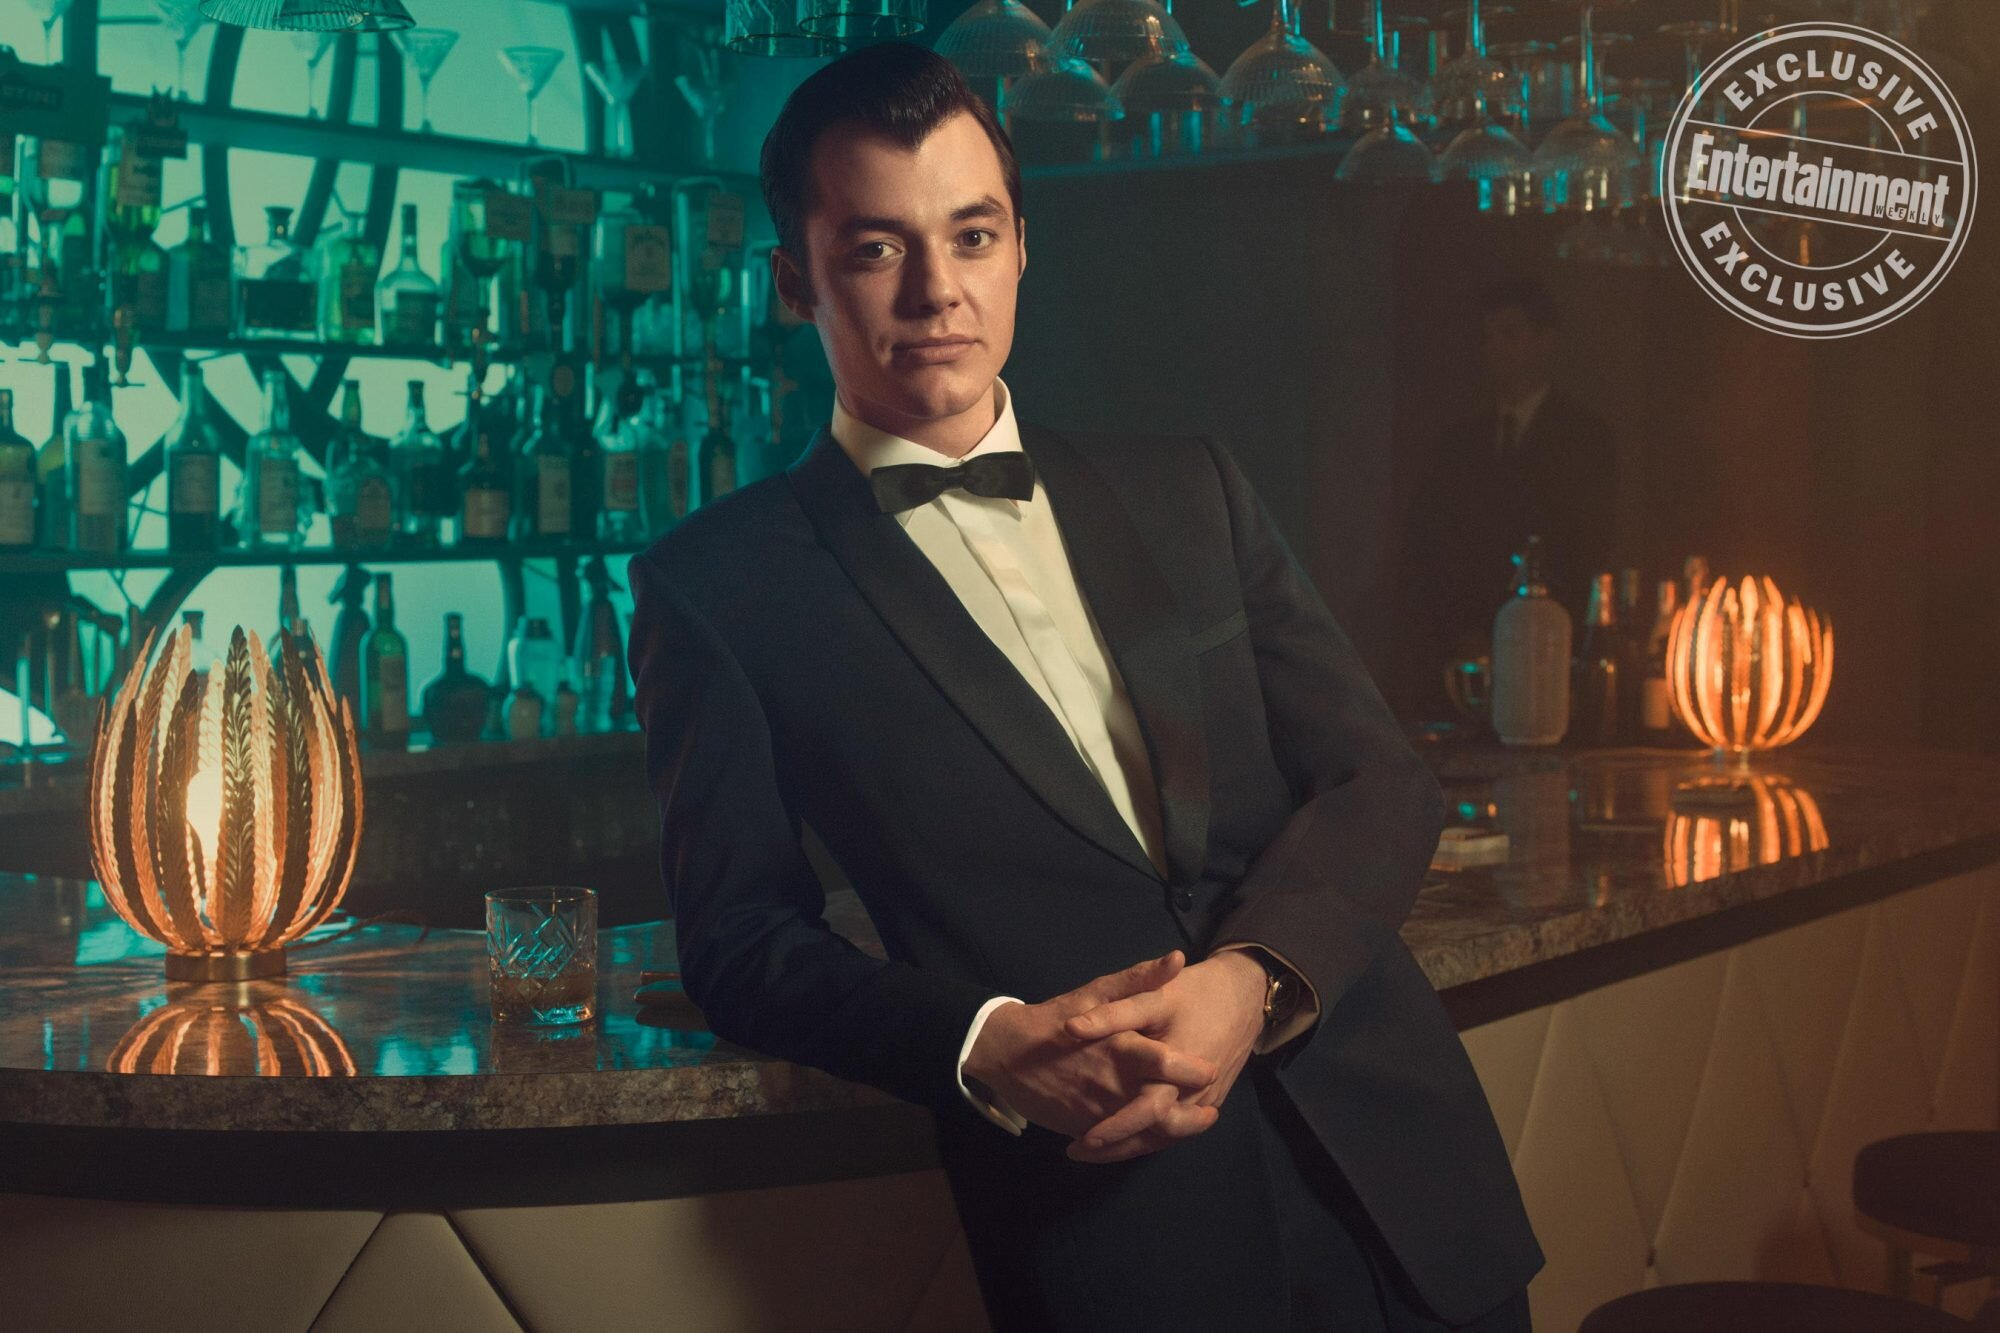 Pennyworth Photos From Batman Prequel Reveal Jack Bannon